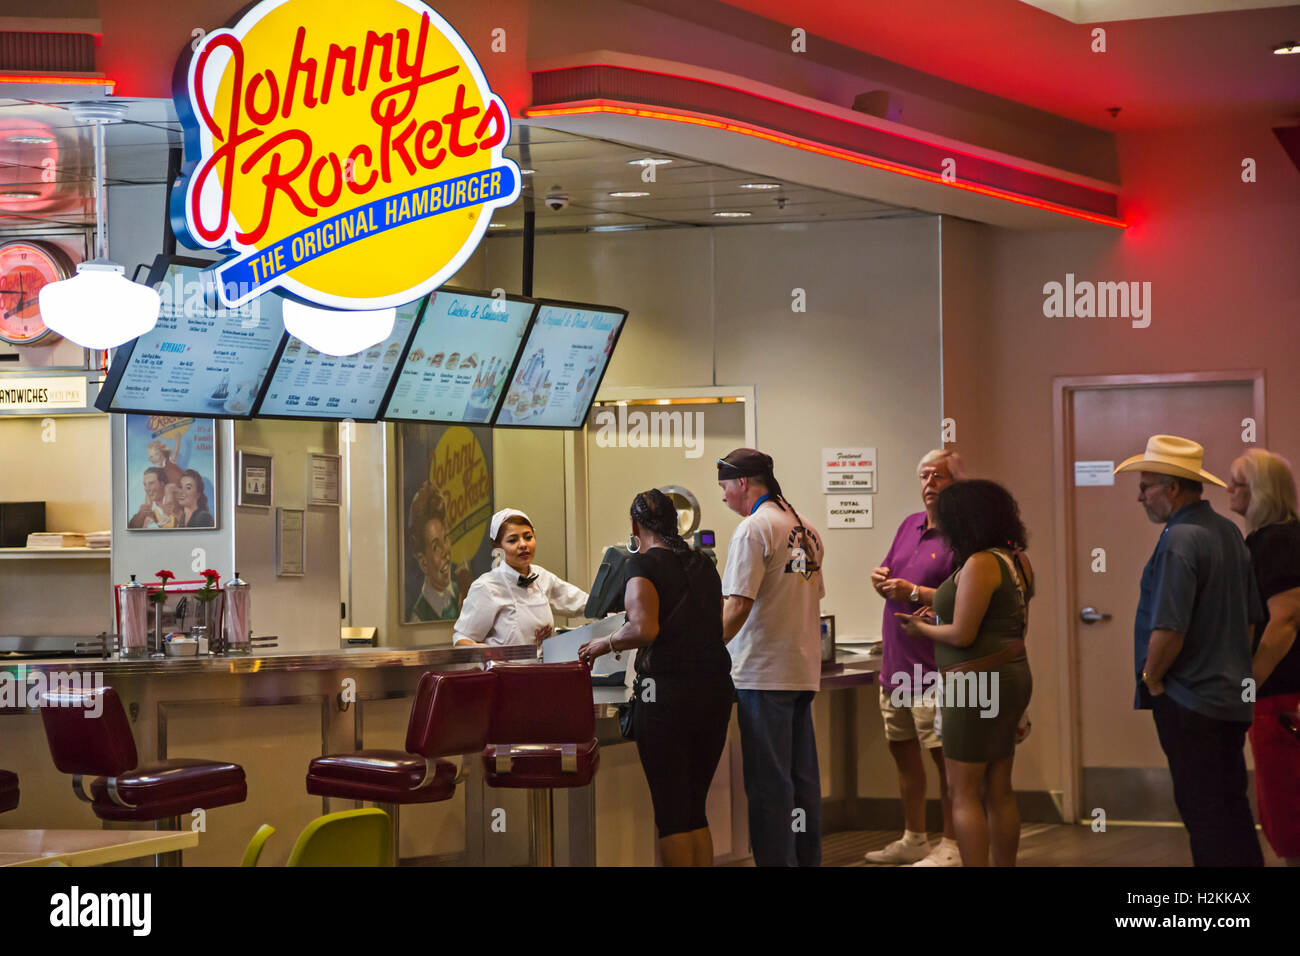 Las Vegas, Nevada - A worker takes orders at the Johnny Rockets restaurant in Bally's Hotel and Casino. - Stock Image